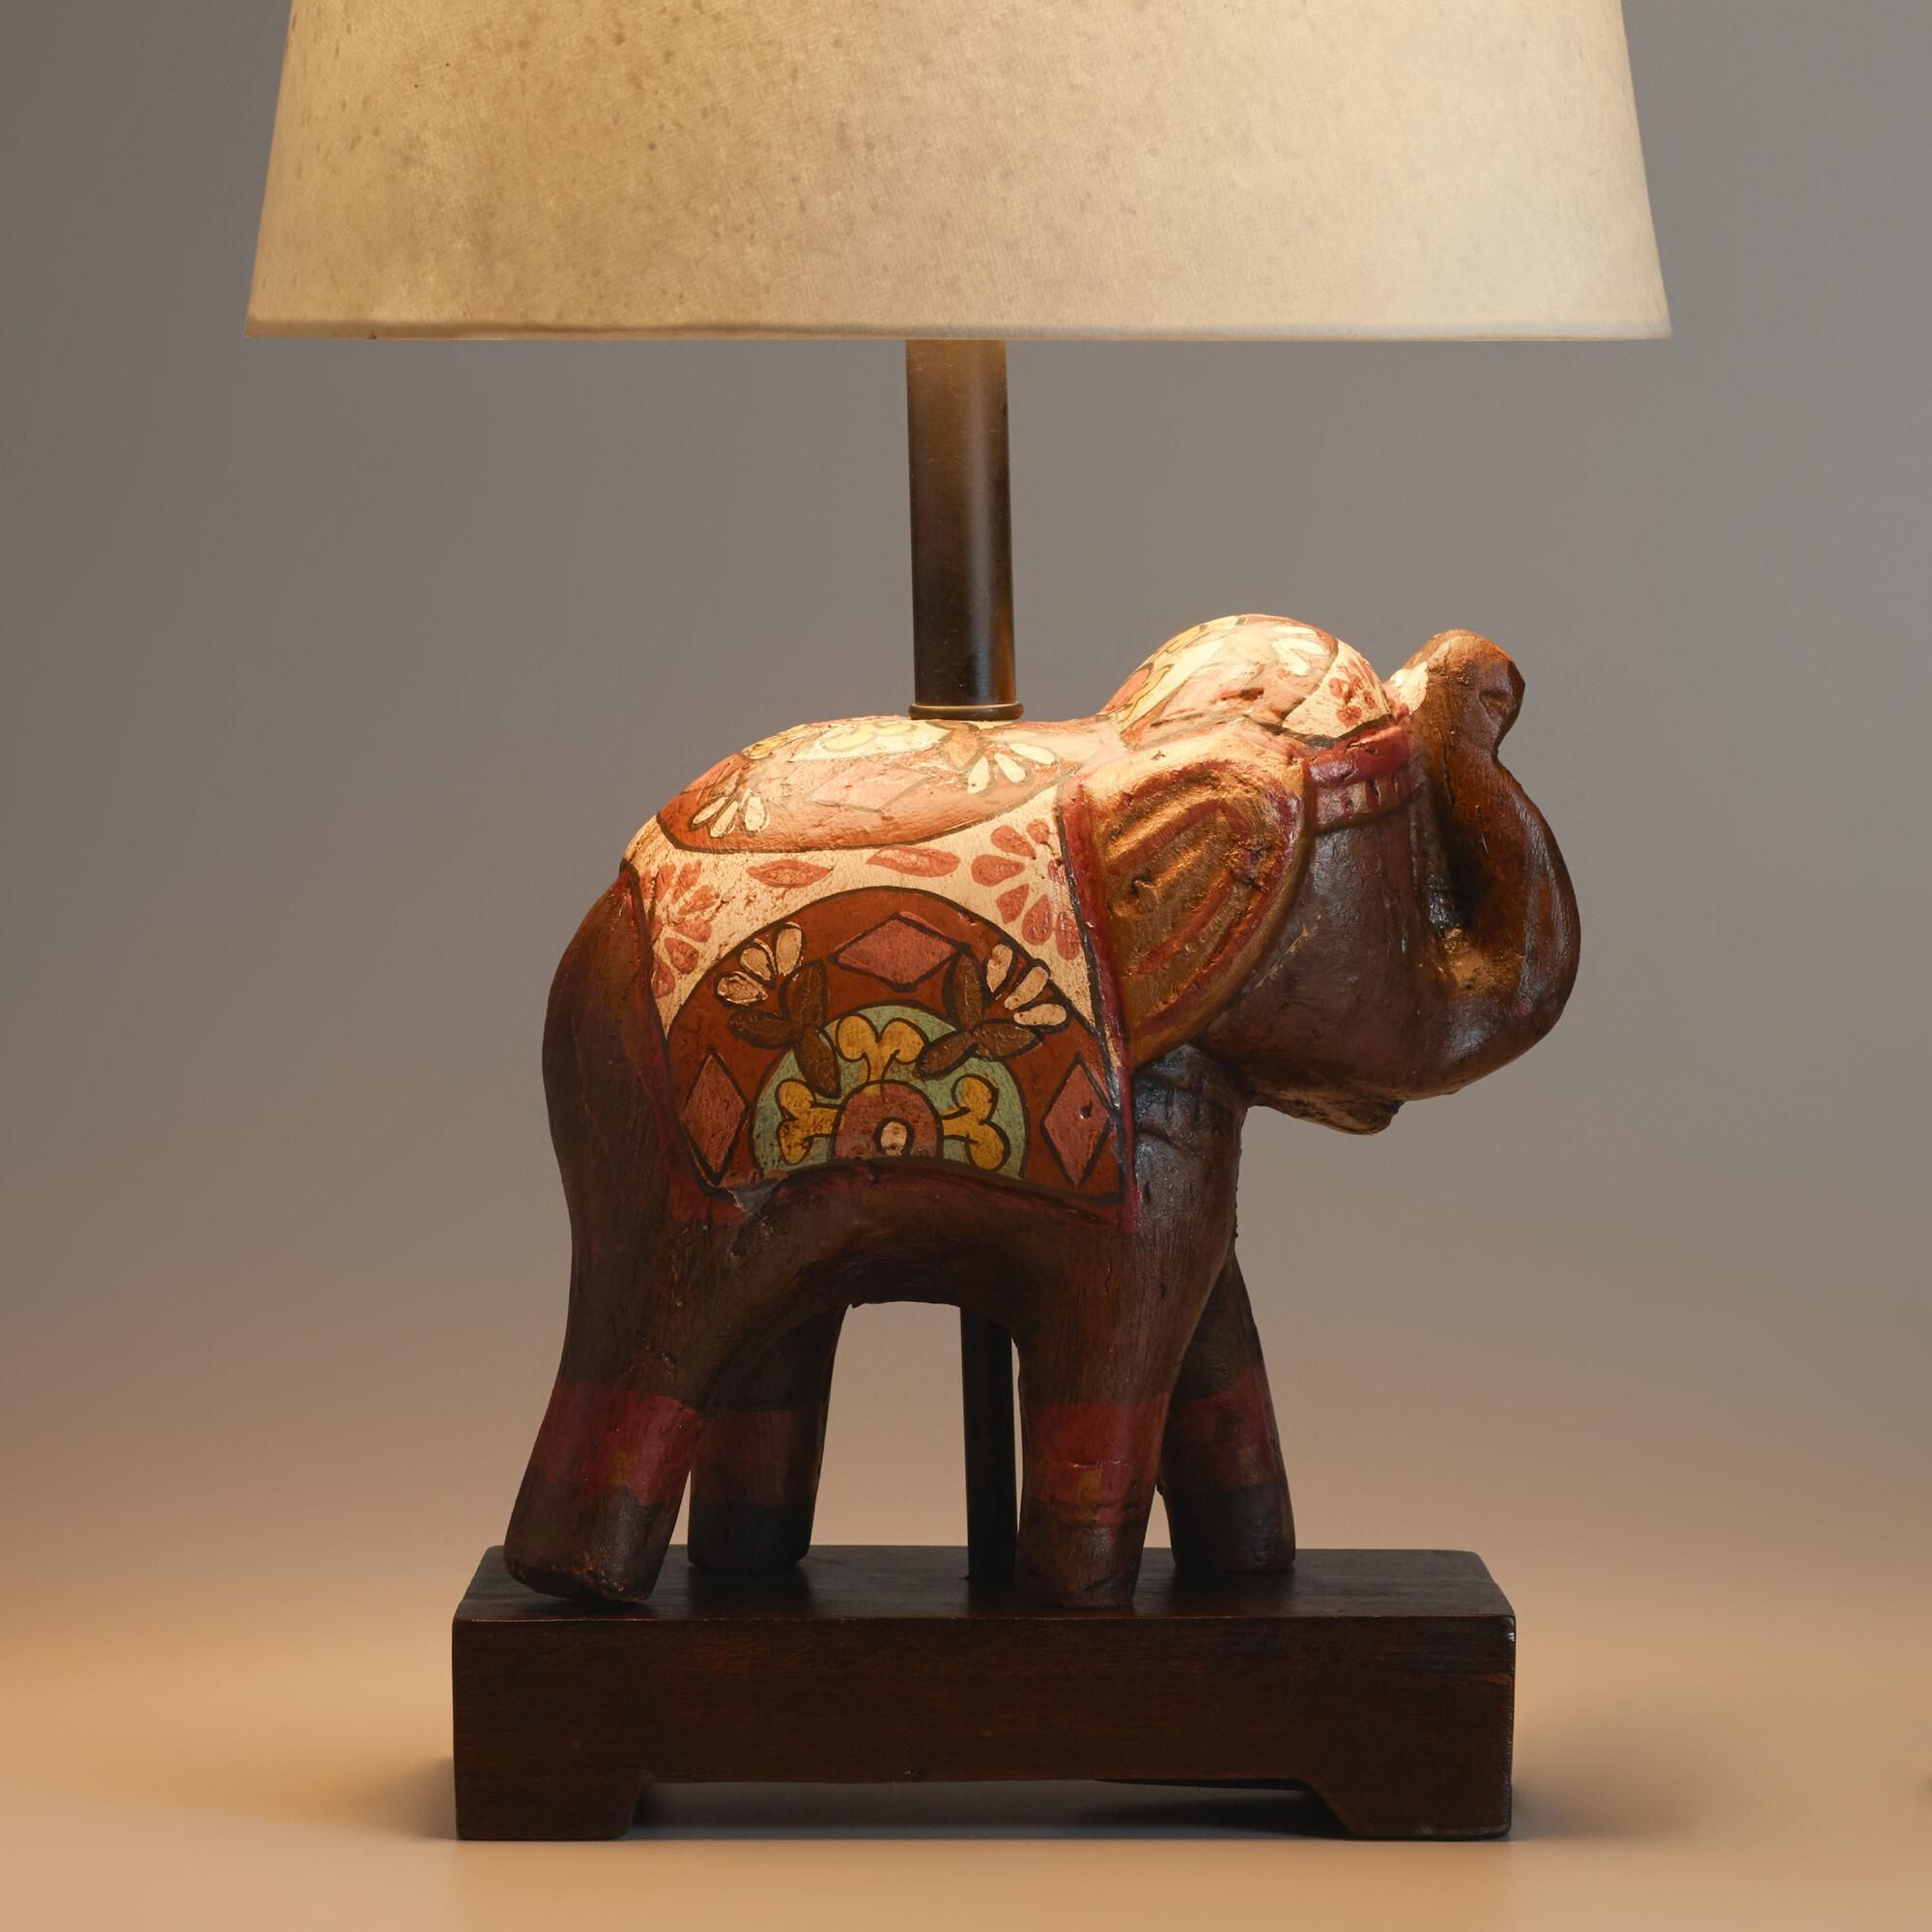 our intricately detailed elephant accent lamp base crafted table terracotta been handpainted and decorated traditional rajasthani circle metal coffee lucite nautical flush mount